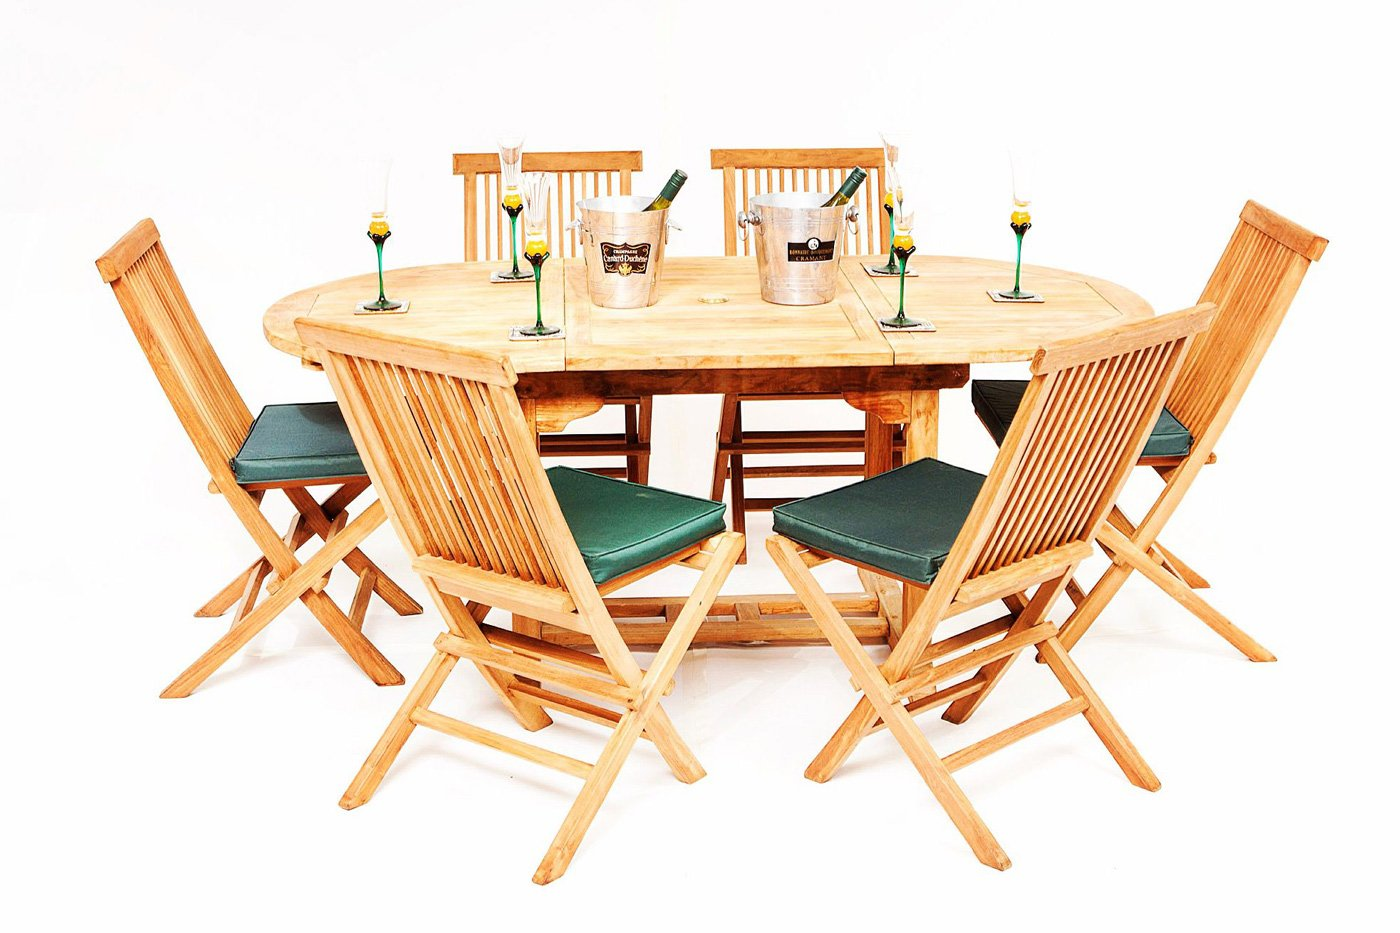 The Beverley Teak 6 Seater Garden Table Chairs Set